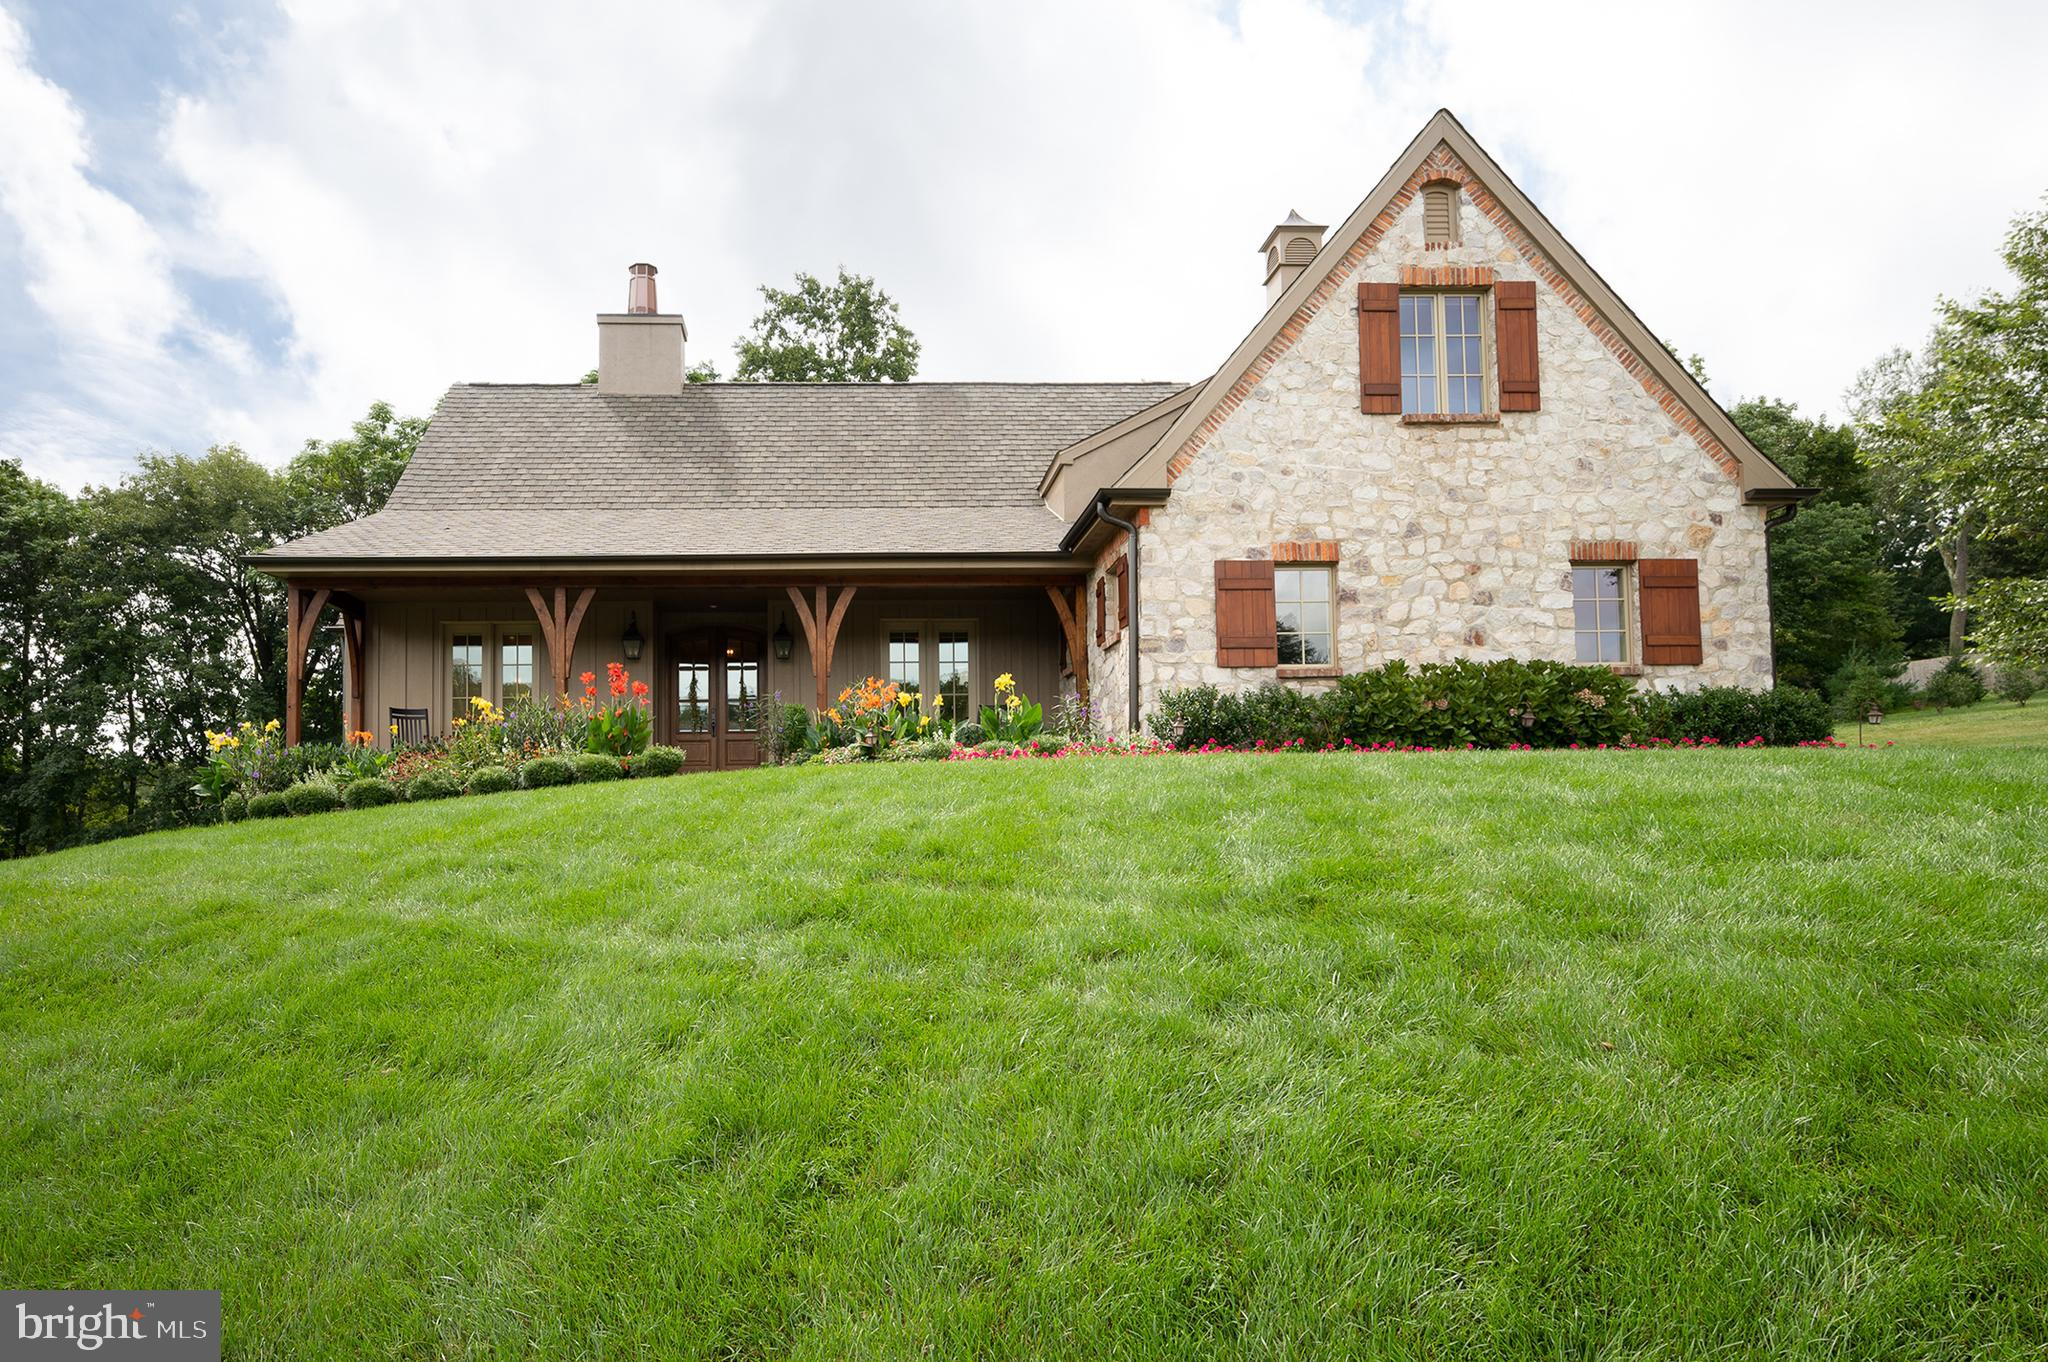 Located on a prime lot in Wagoner's Row, this beautiful residence enjoys an abundance of open vistas, woods and pond views. Created with total relaxation in mind, the architecture, landscaping, and interior design are seamlessly fused together. Exposed beams and volume great room ceilings are light and welcoming, the airy, open-flowing great room linking flawlessly with a modern kitchen. On the first floor the residence comprises an entry foyer with custom appointed hardwood flooring, leading to the open great room, chef kitchen with center island & built-in appliances, separate breakfast room, laundry and main level primary suite with private bath, custom fit-out walk in closet and sitting room. Additional main level features include a 2nd bedroom, main bath, laundry and two-car side entry garage. The upper level includes a 2nd primary suite with a well-appointed private bath, and two walk-in closets. Exceptional outdoor entertaining from the covered porch with roll down electronic screens leading to the open terrace appointed with an outdoor kitchen, overlooking the private-well landscaped setting. Additional highlights include a custom designed stone/brick fireplace wall in the great room, Vantage house automation system, electronic shades, heated flooring in the primary suites, brick herringbone walkways and a full un-finished lower level.